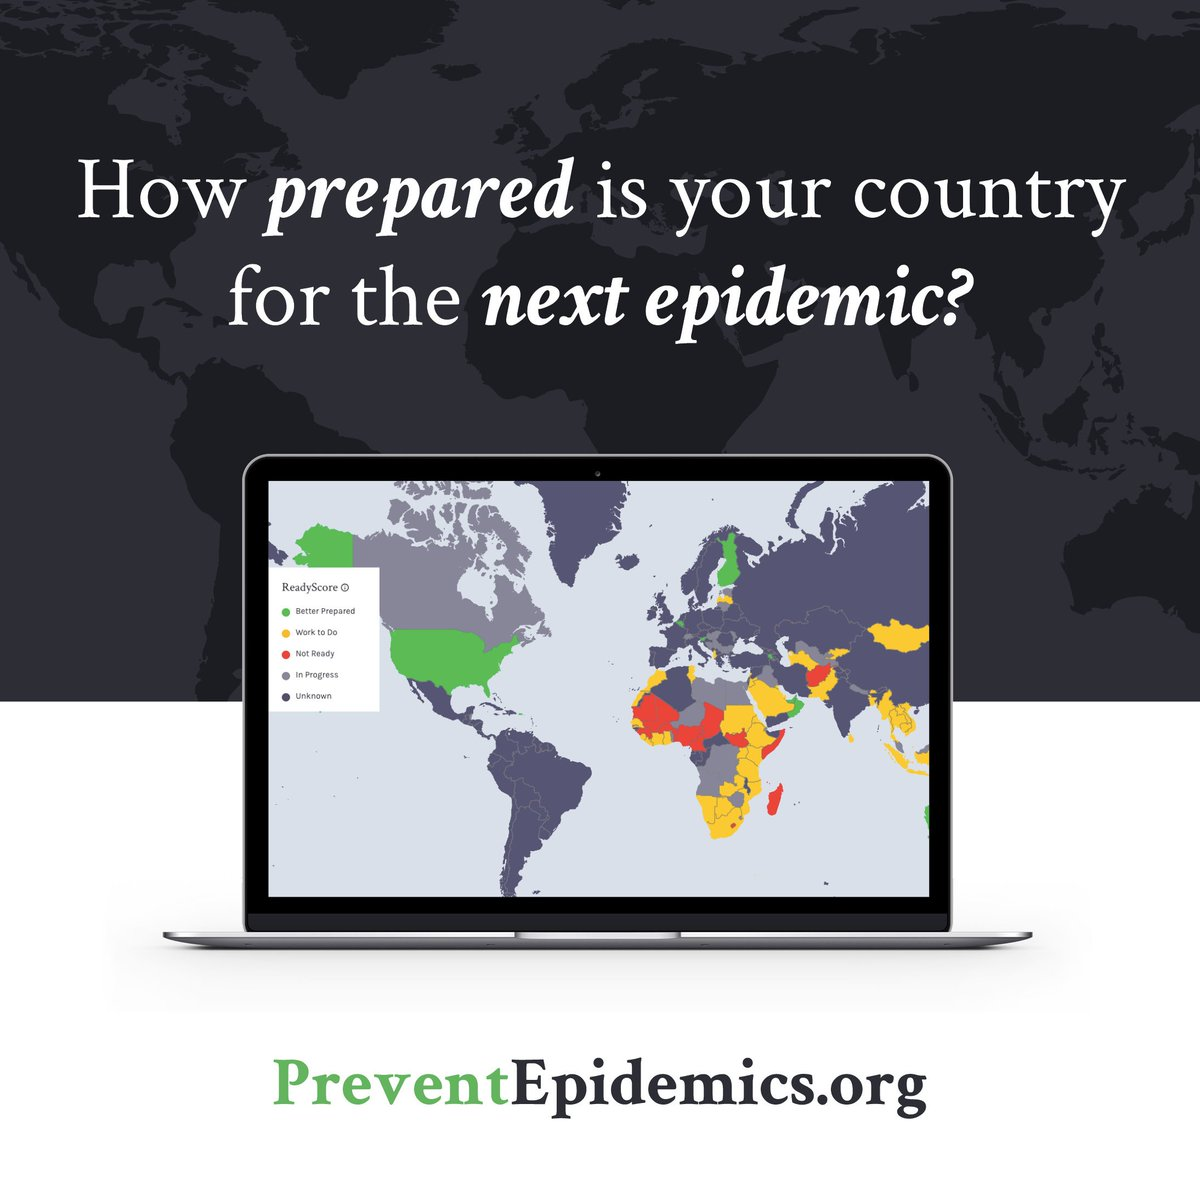 test Twitter Media - https://t.co/OtYkKf8wzJ spotlights gaps in preparedness and highlights actions countries, donors, activists, and organizations can take to fill them. Is your country prepared? #PreventEpidemics https://t.co/geQbn1PWwP https://t.co/8WqfxbADyl